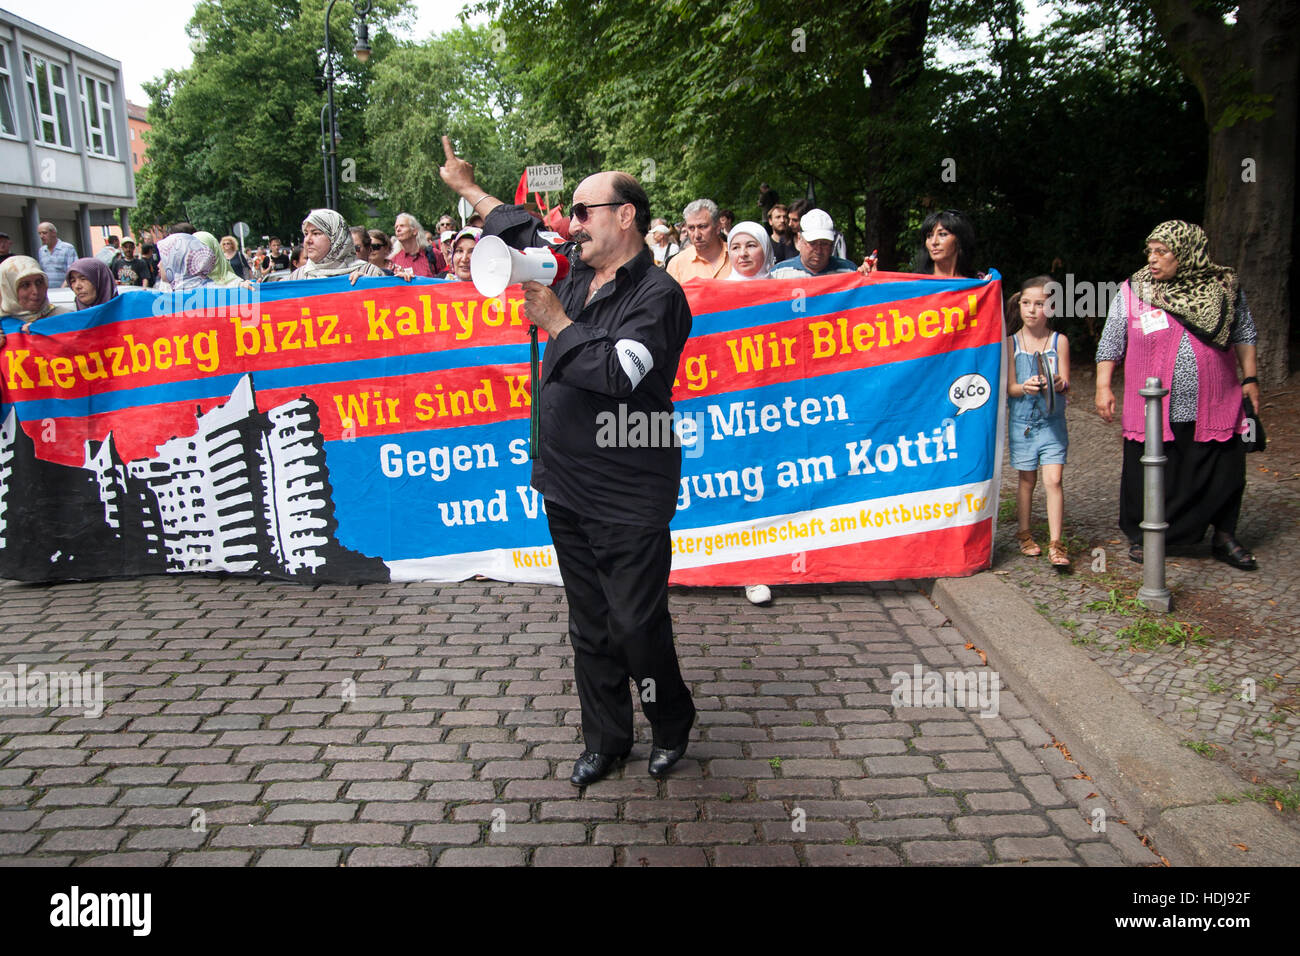 Demonstration against rising rents by Kotti & Co., a community of tenants at Kottbusser Tor. Berlin, Germany. - Stock Image